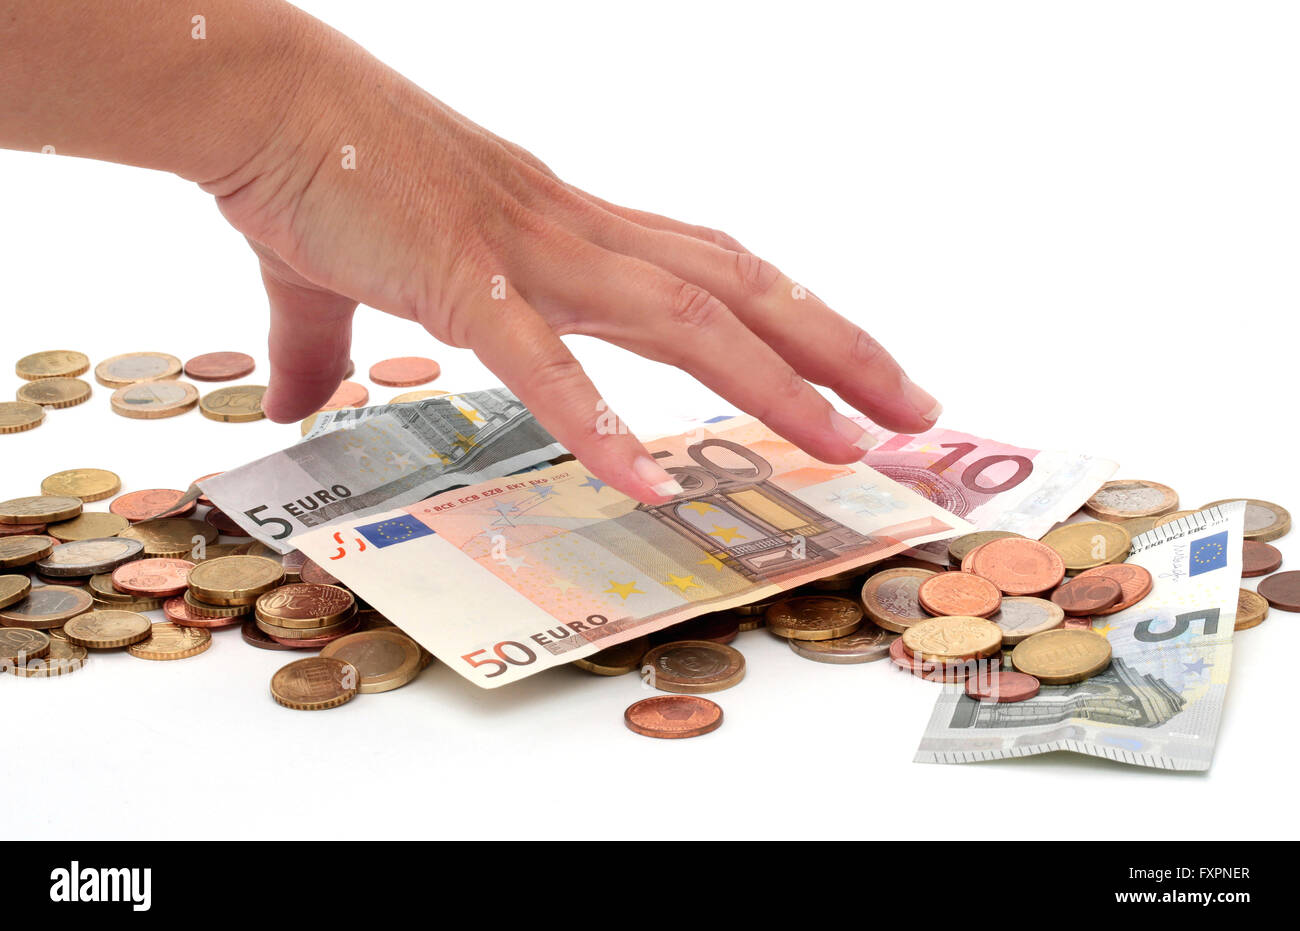 Grabbing money - Stock Image